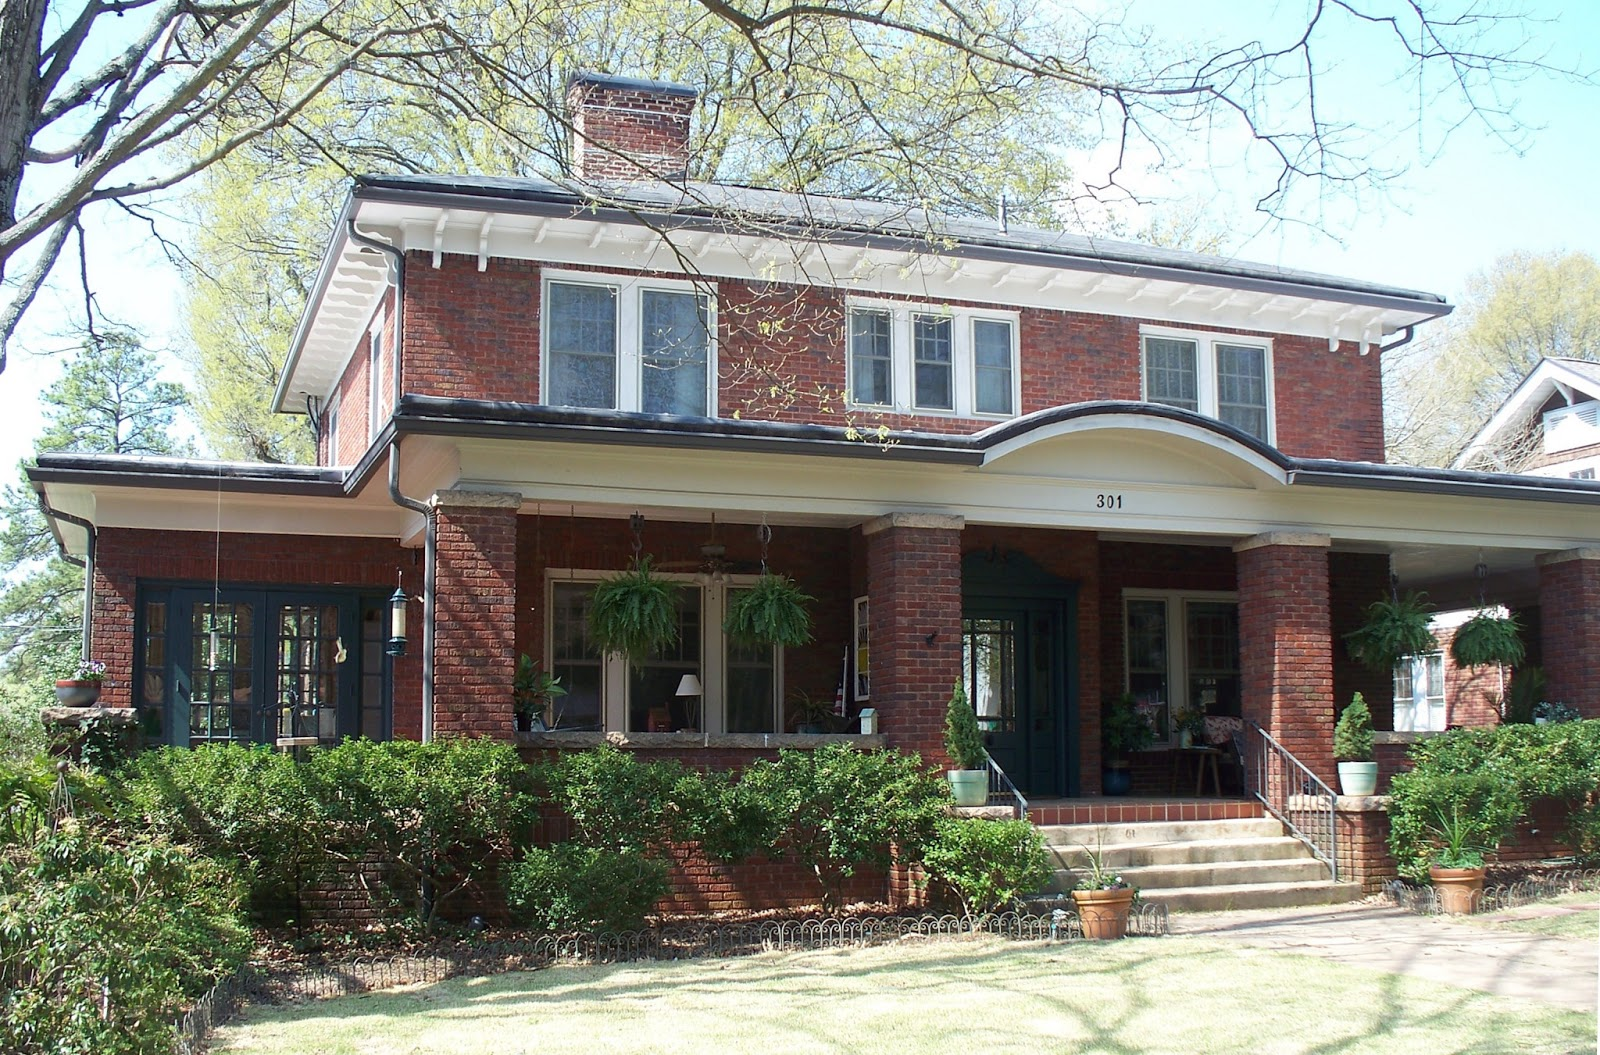 Salisbury north carolina real estate april 2013 Brick craftsman house